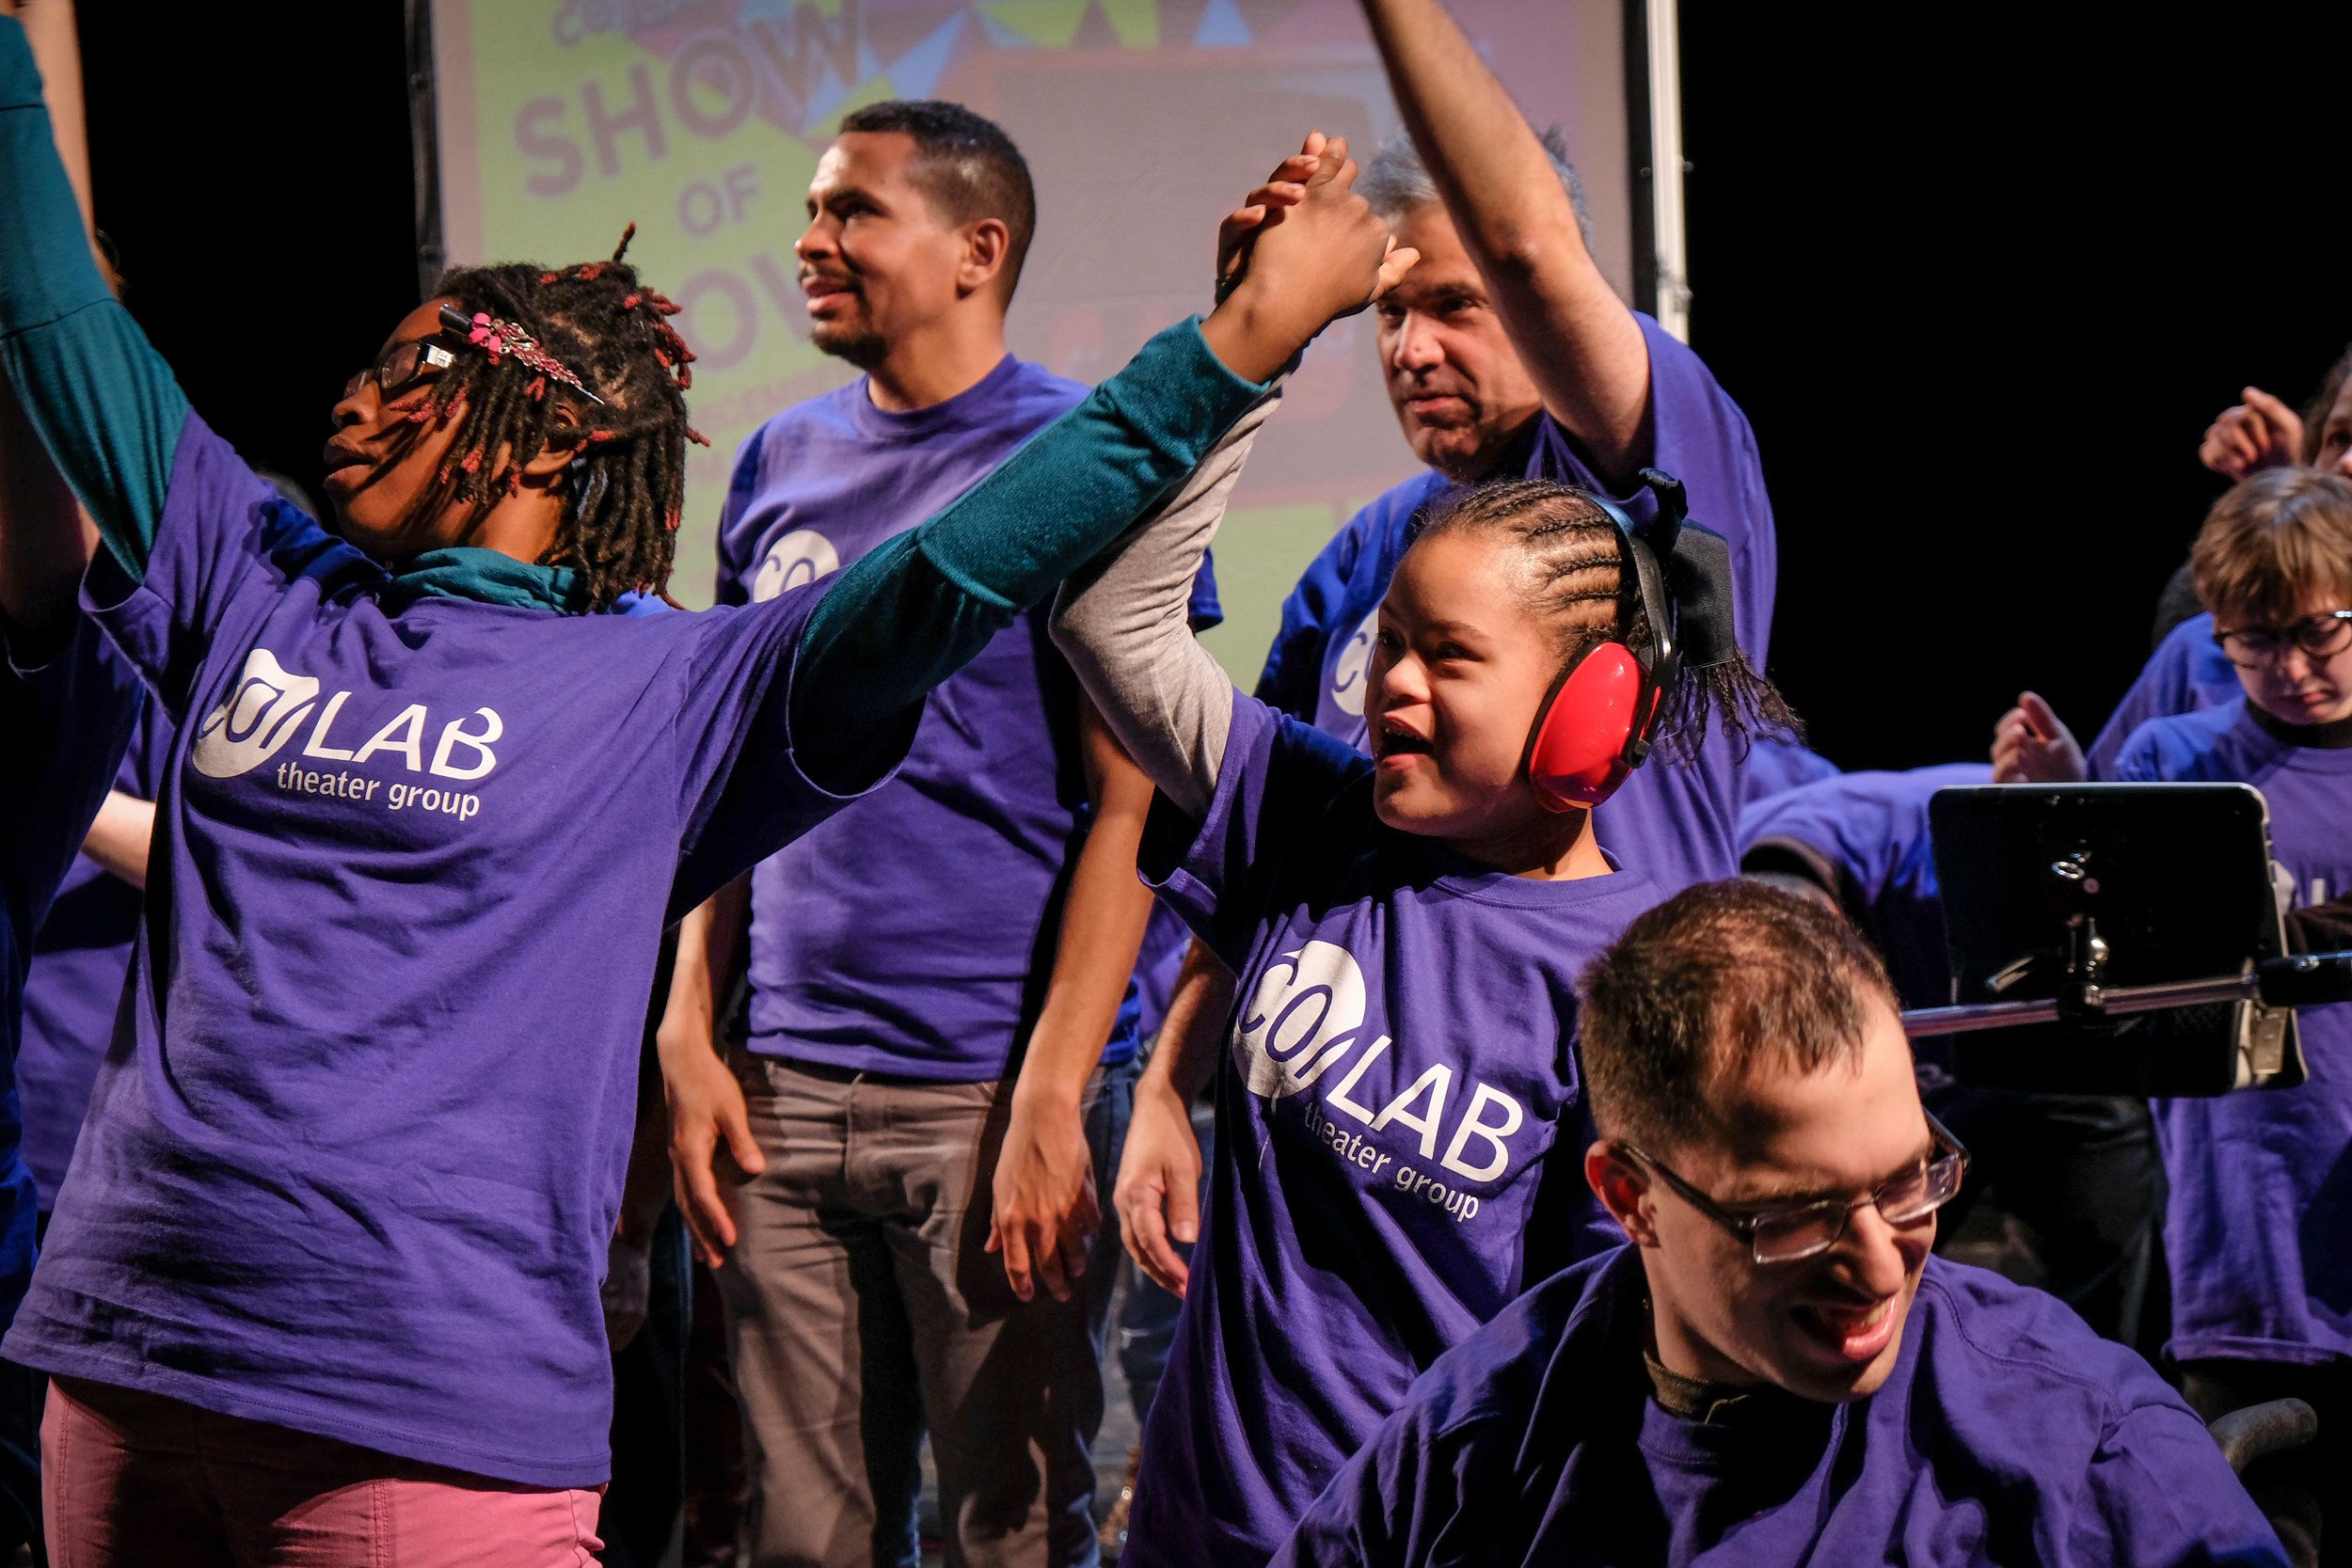 Seven actors of various ages wear purple CO/LAB shirts. Each is looking in a different direction, several have arms raised.